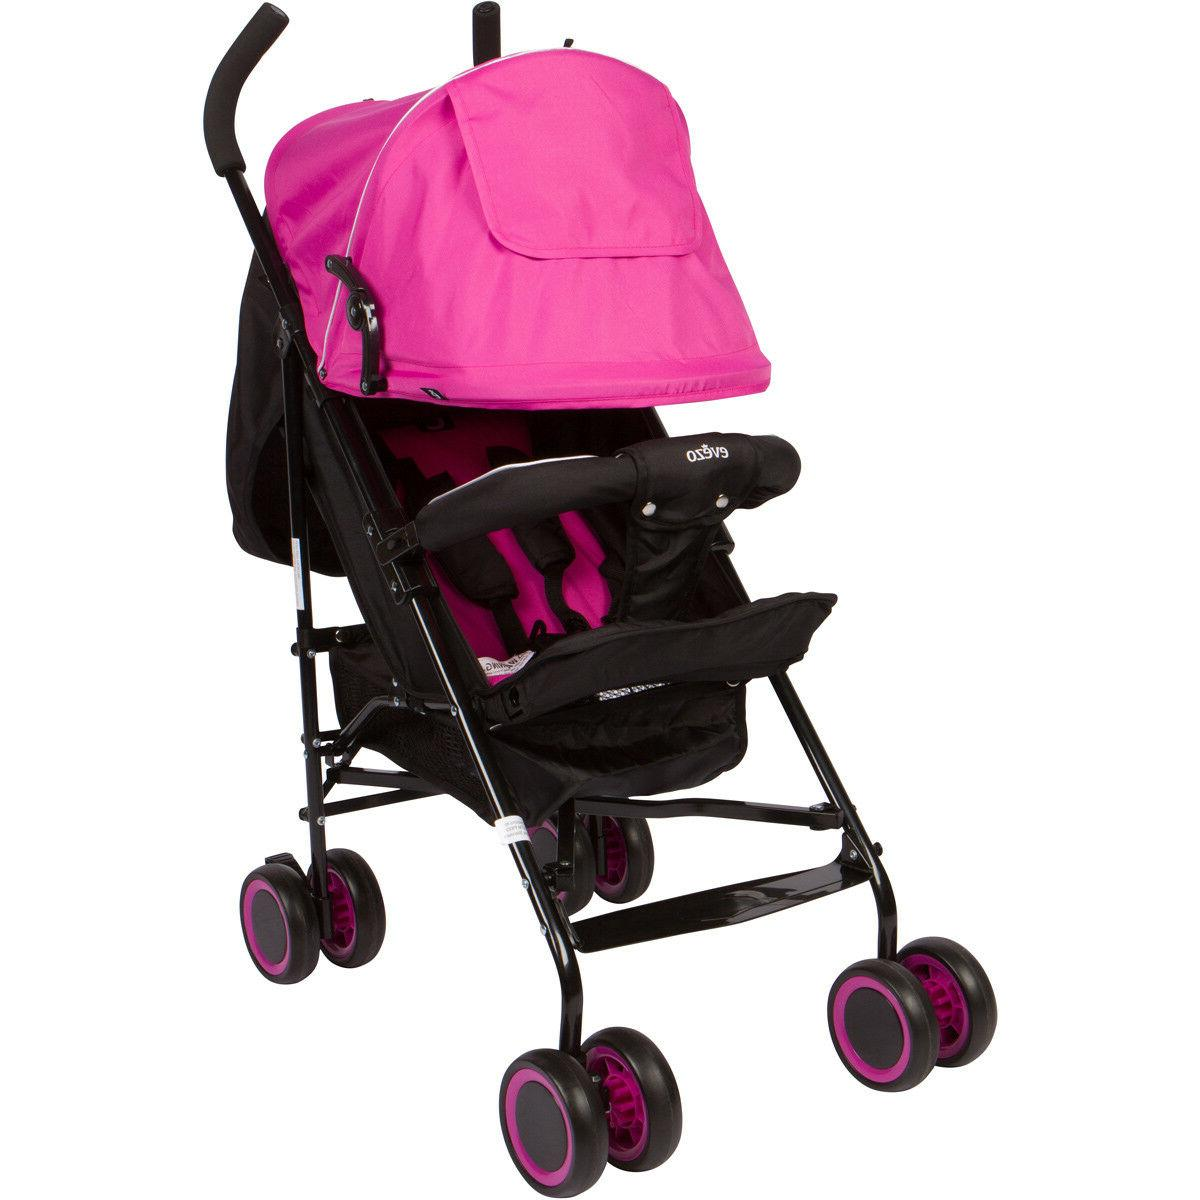 Stroller with with Full